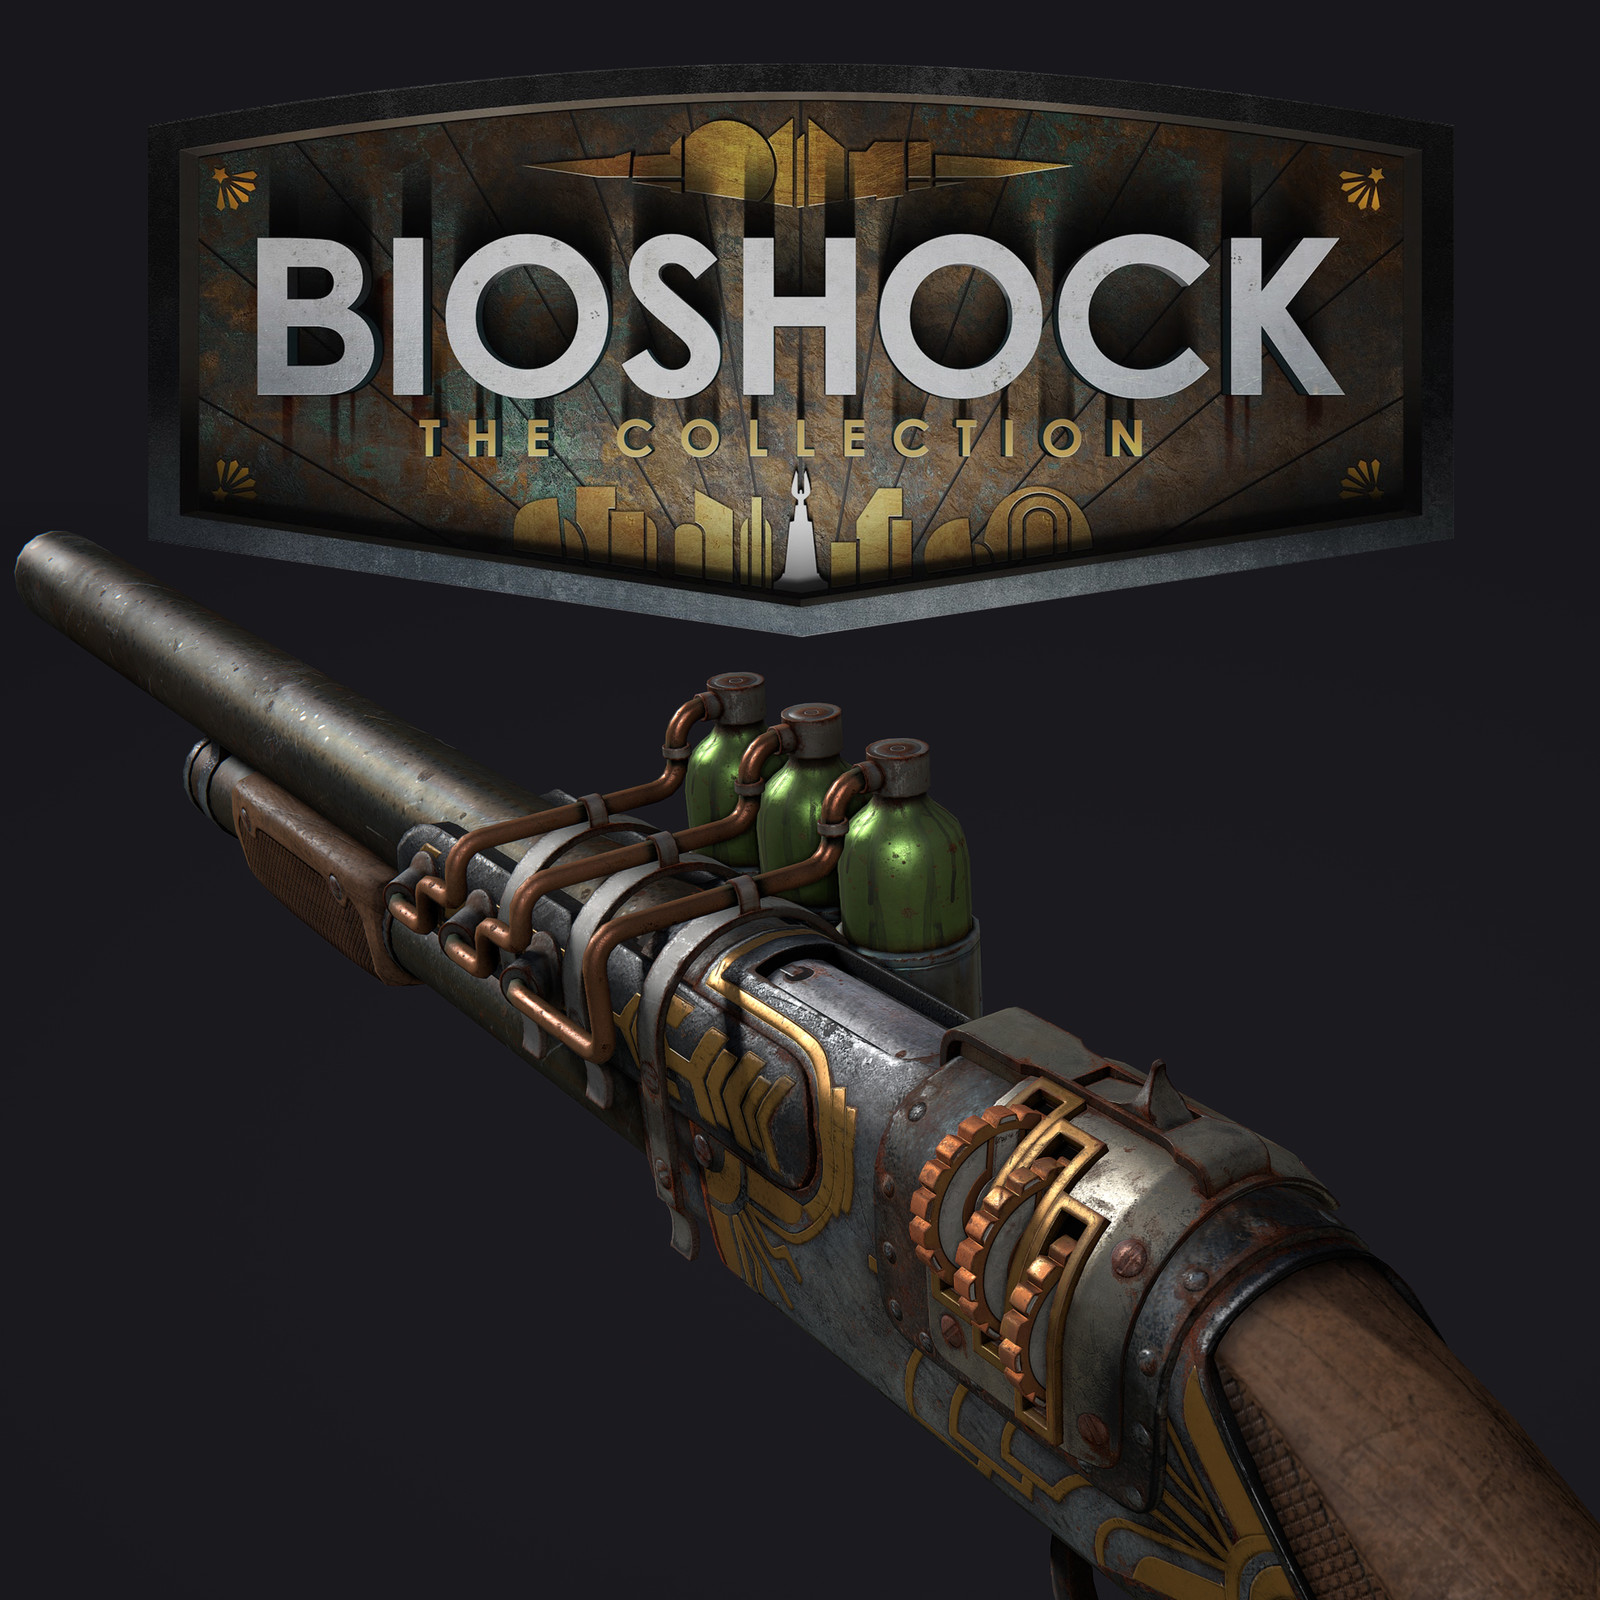 Bioshock: The Collection - Shotgun